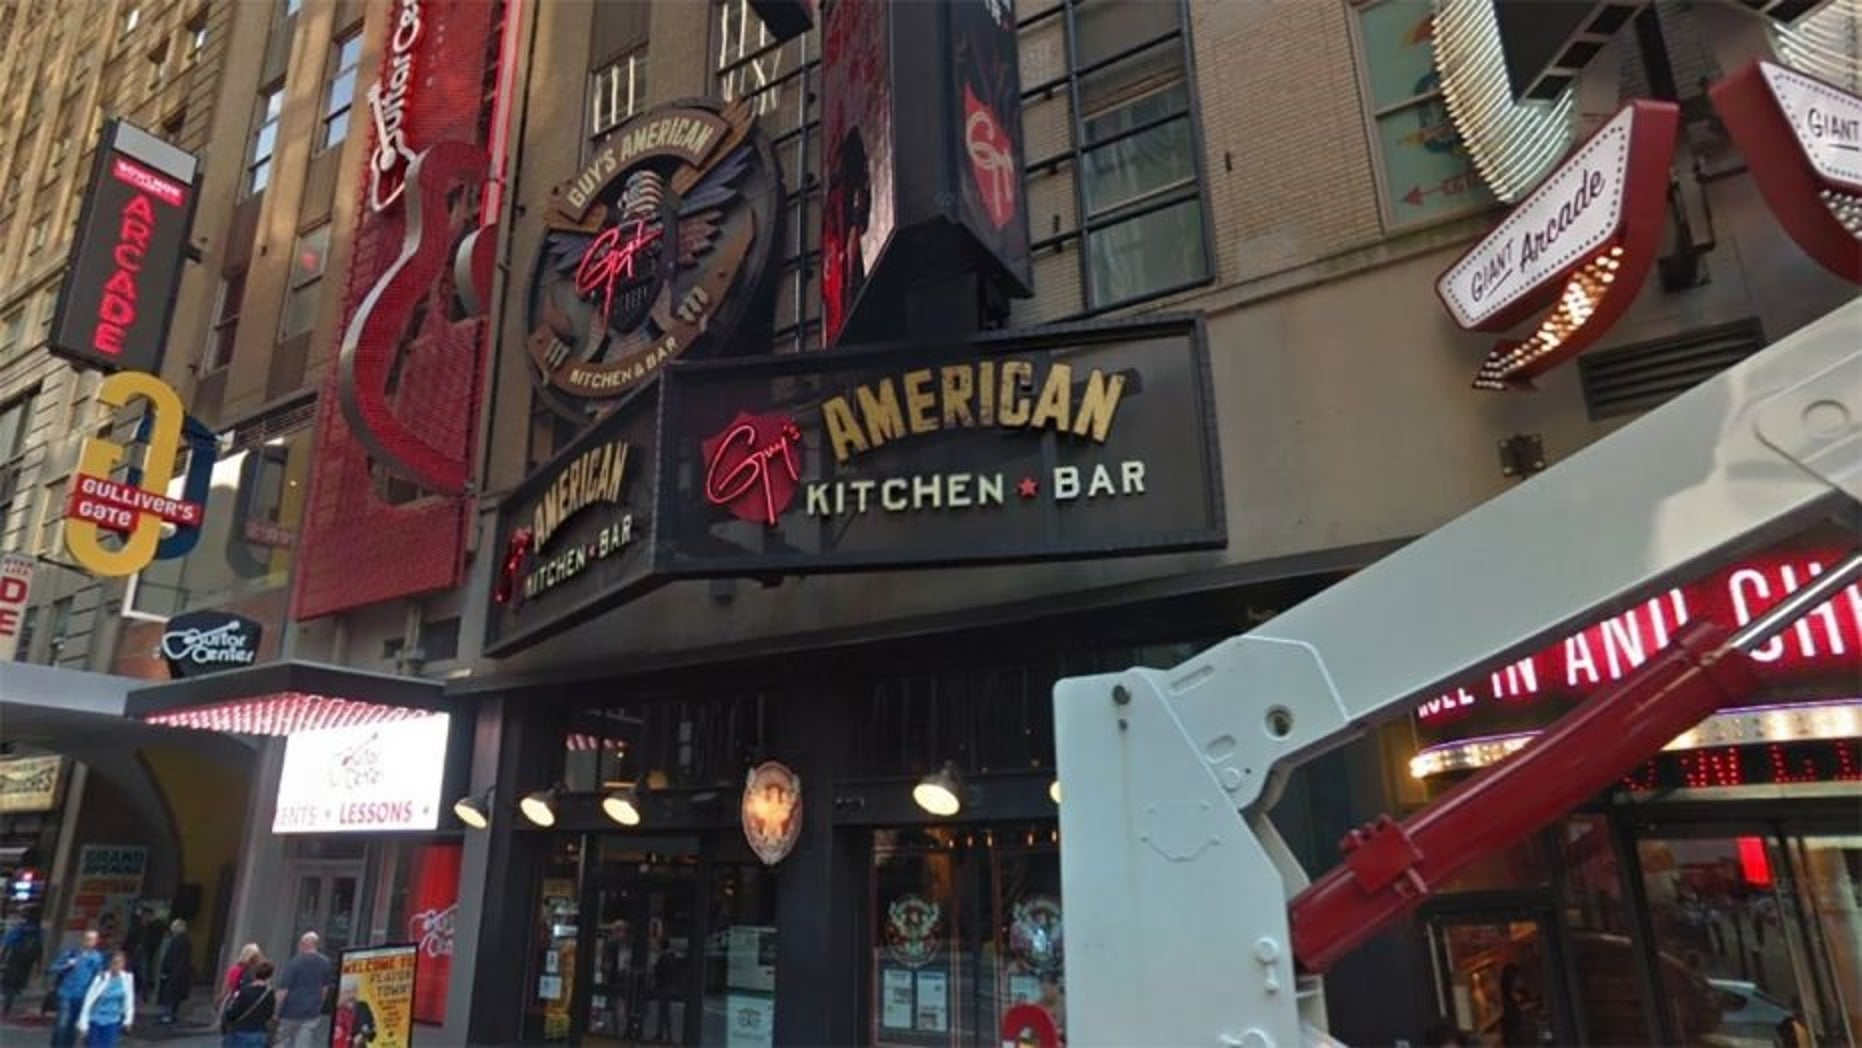 Guy Fieri's American Kitchen & Bar reportedly closed due to high rent.